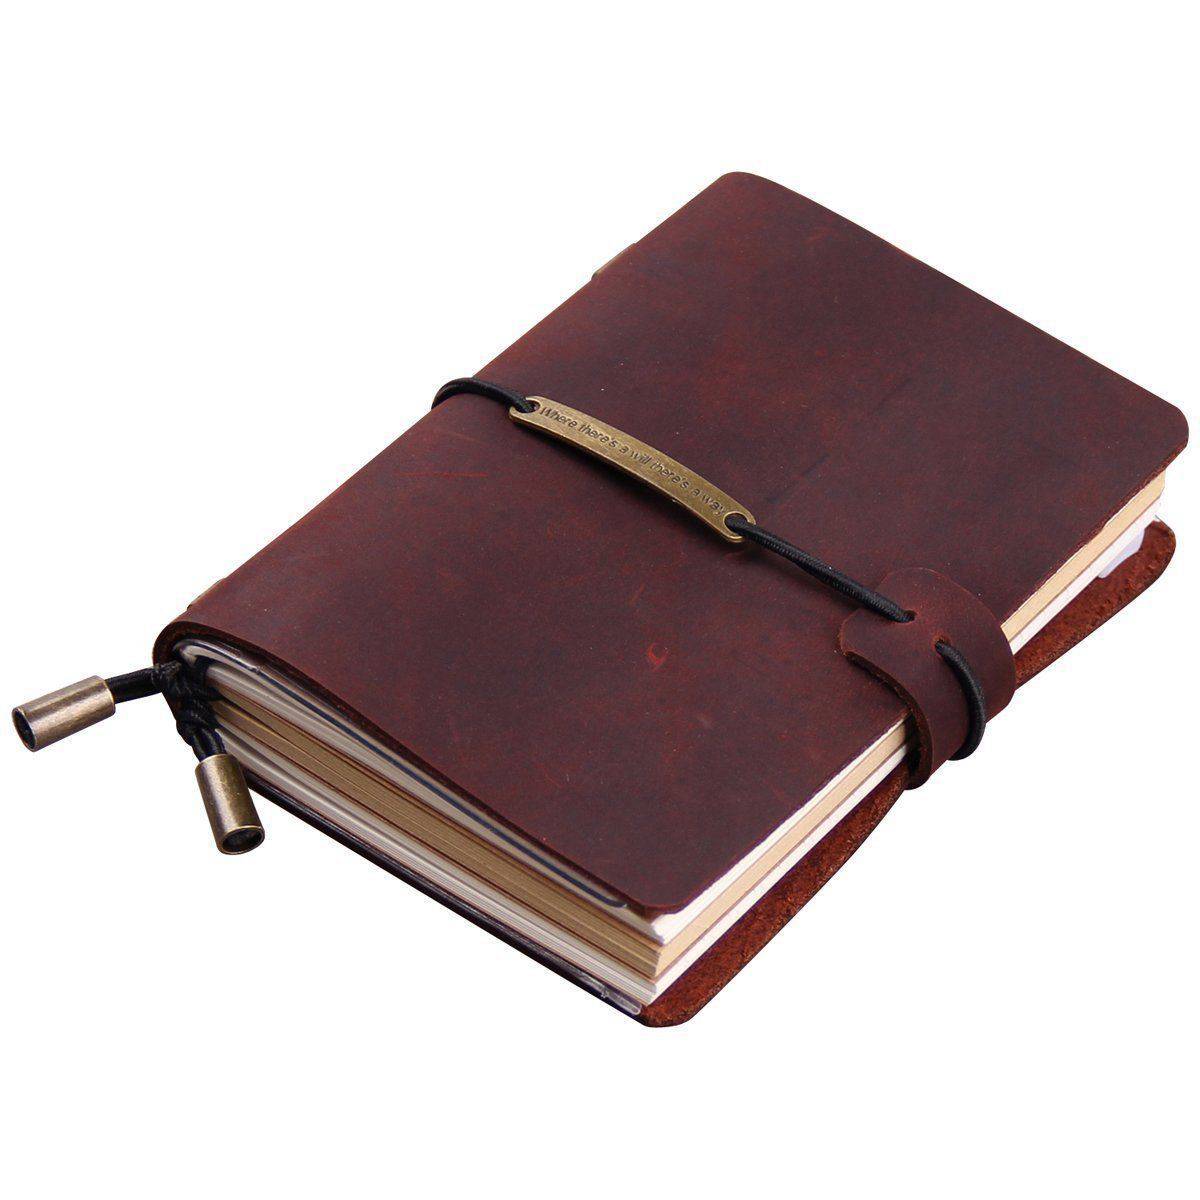 New Handmade Travelers Notebook, Leather Travel Journal Notebook for Men & Women, Perfect for Writing, Gifts, Travelers, 5.2